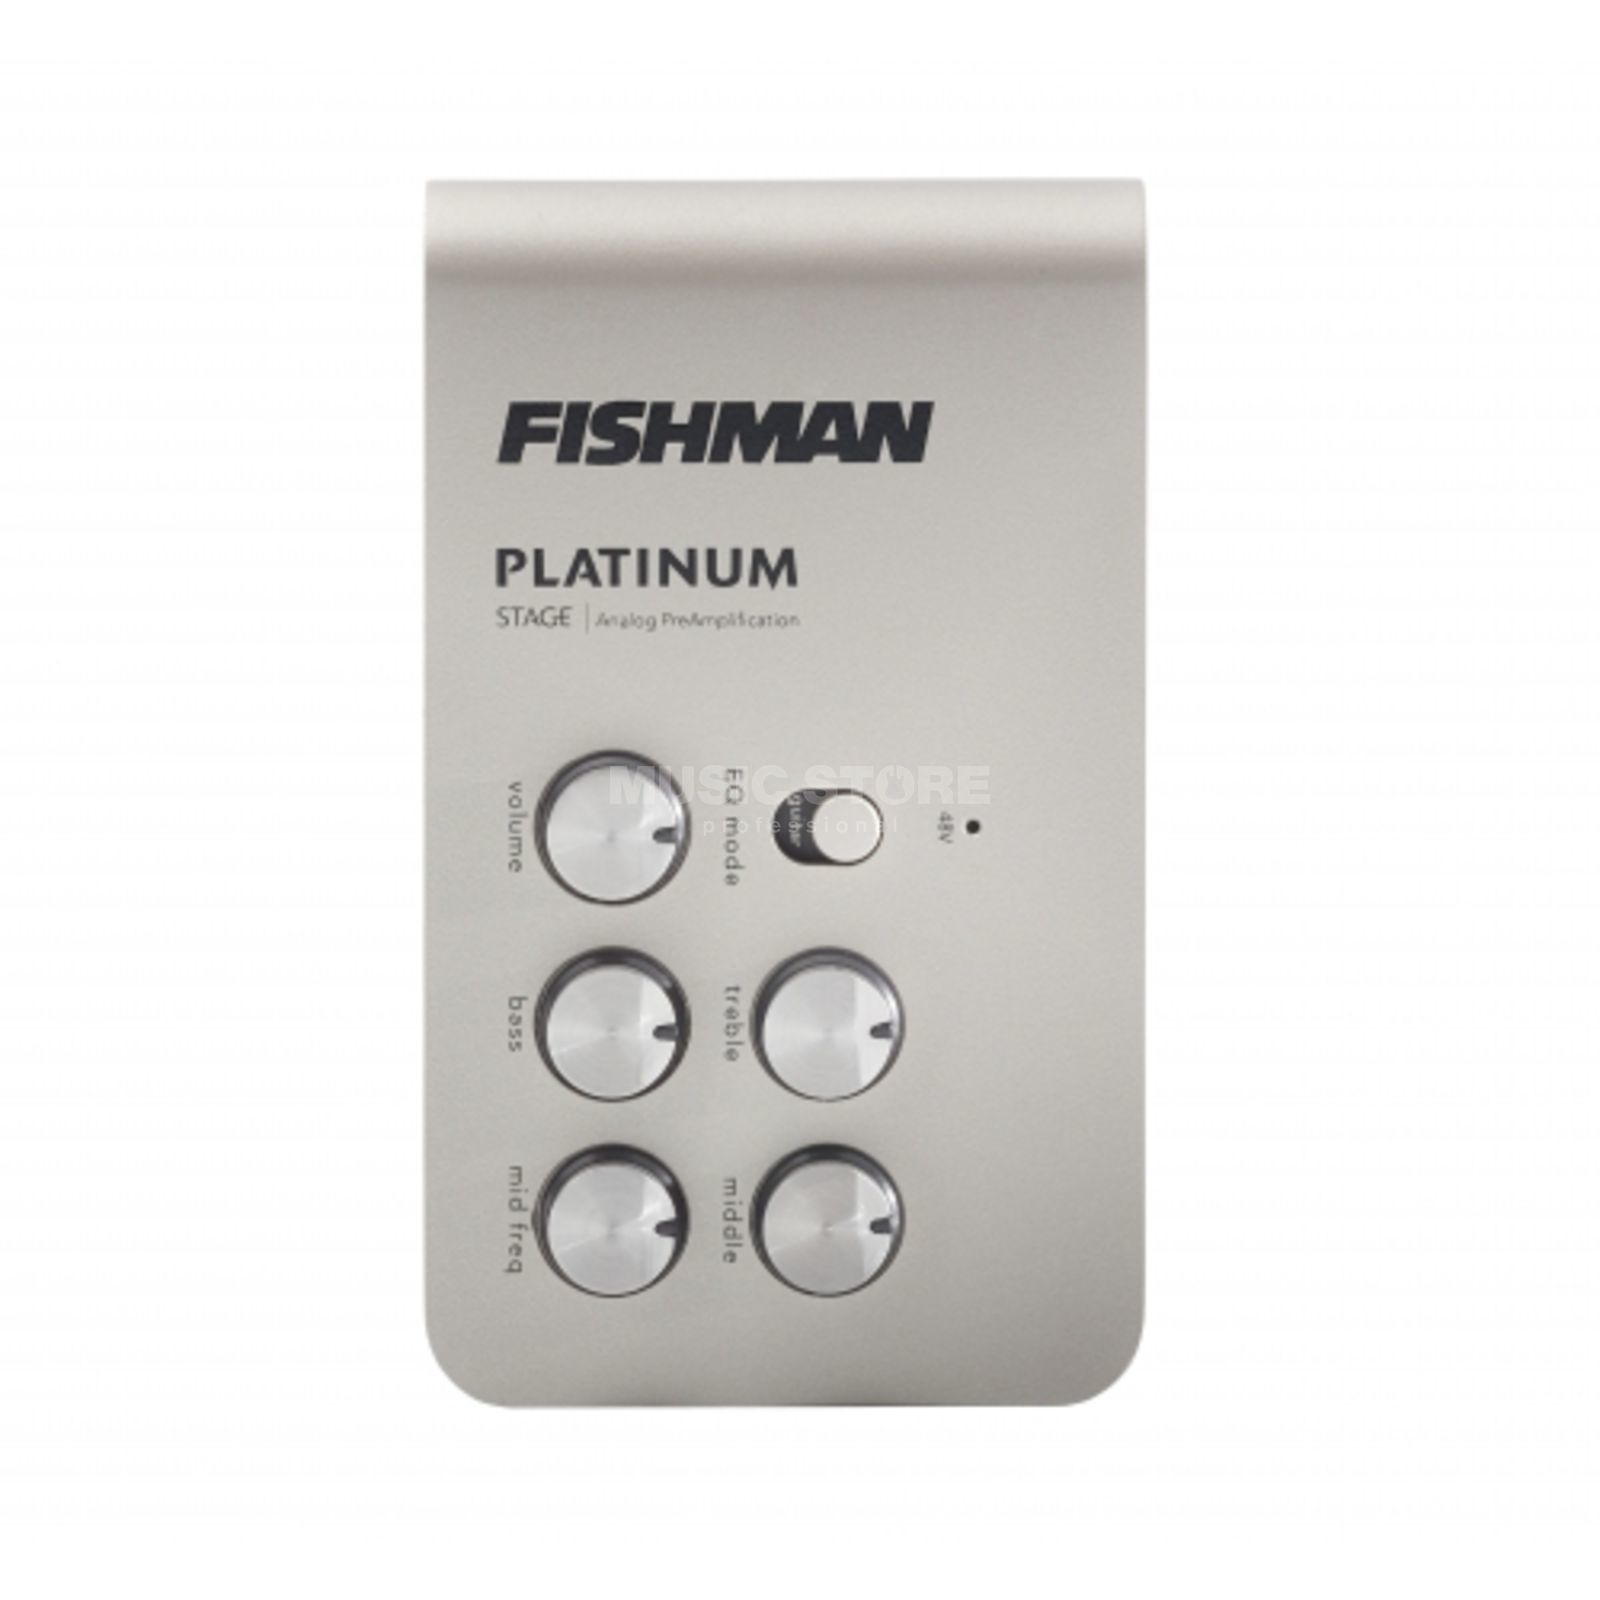 Fishman Platinum Stage Analog Preamplification Produktbild